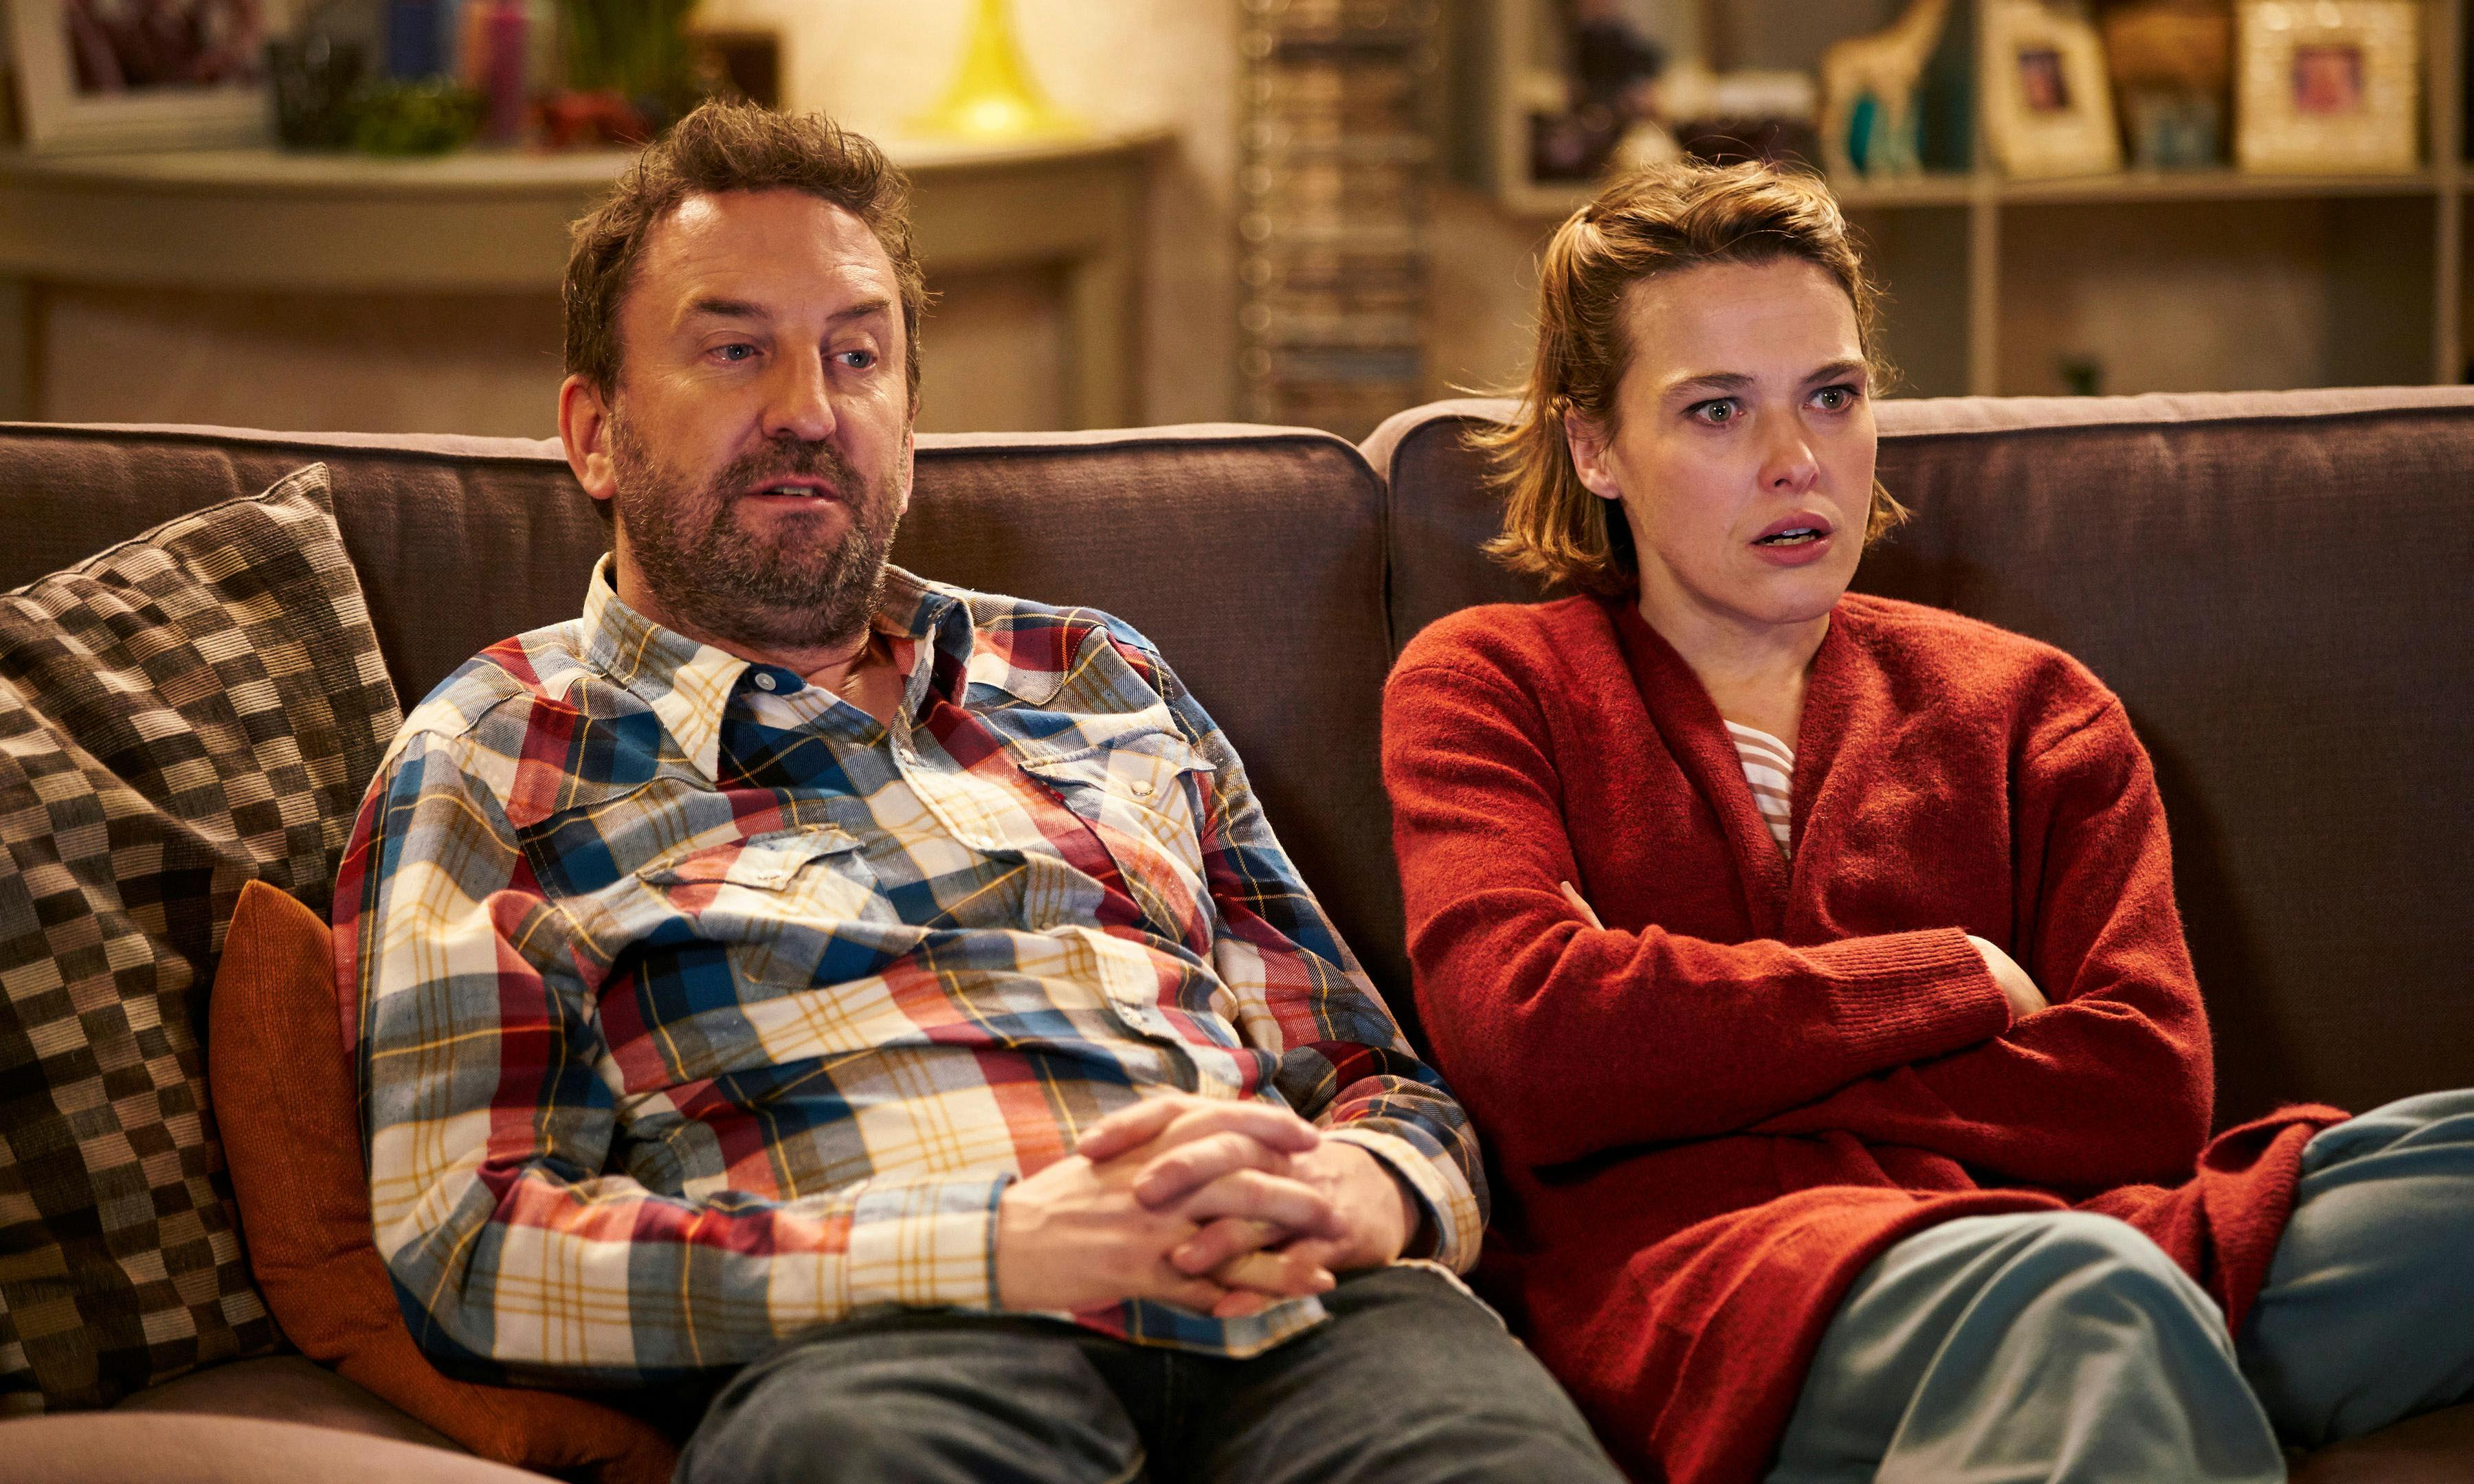 How Not Going Out's heroes went from cat-fight chemistry to child-saddled losers